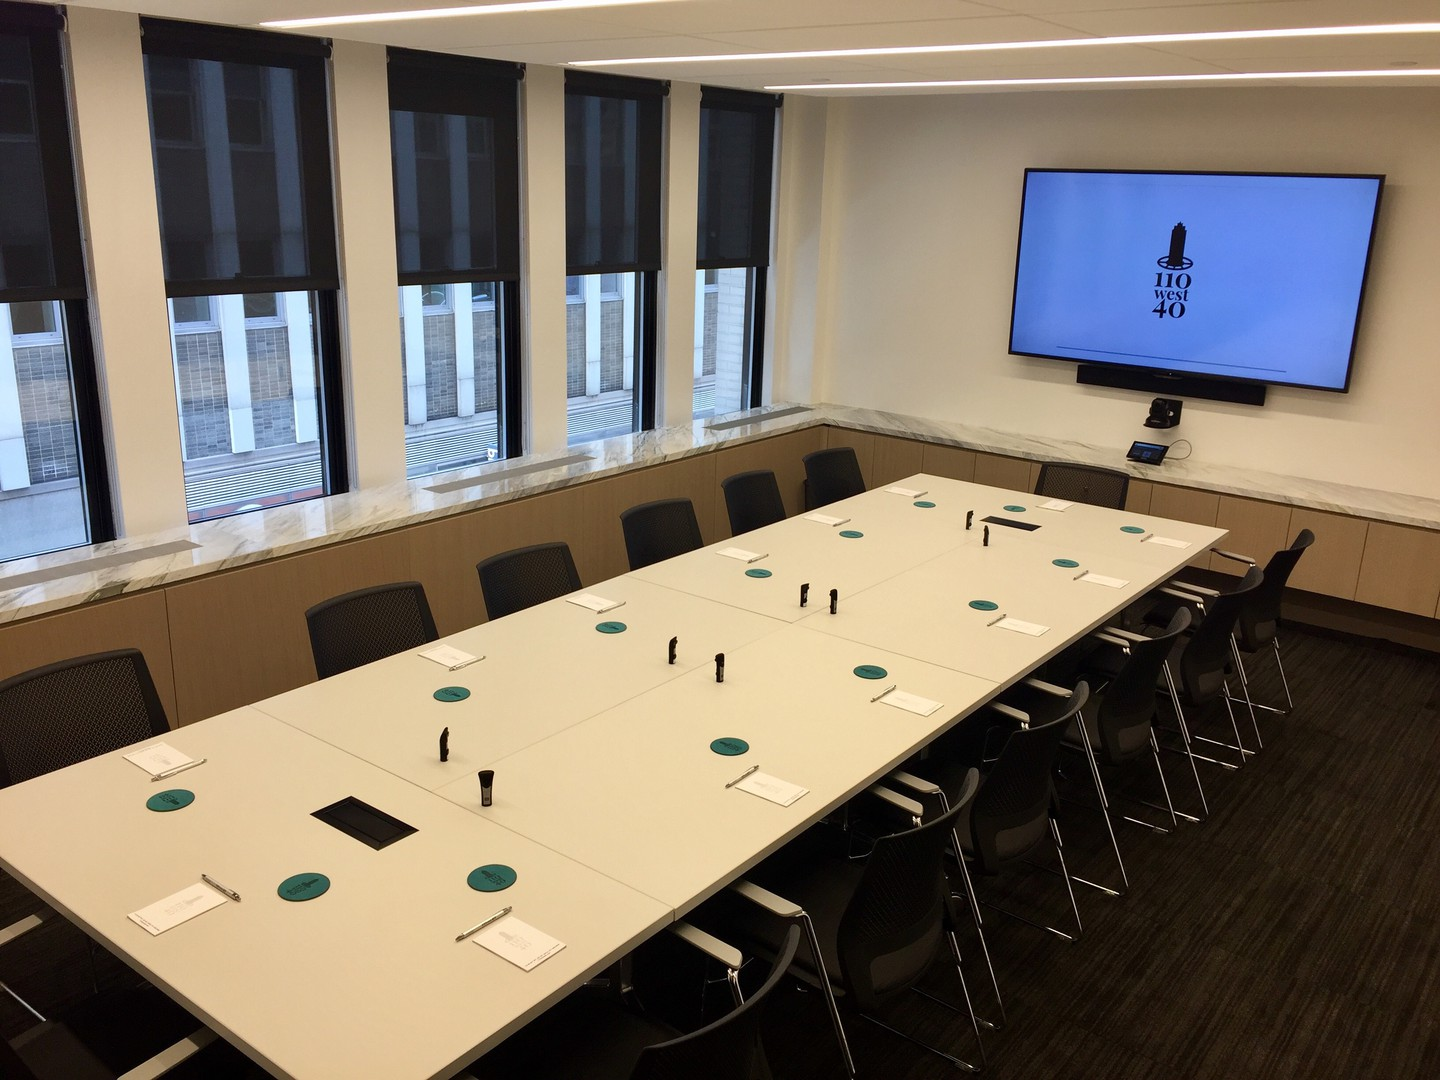 NYC  Meetingraum 110west40 Conference Room A image 0